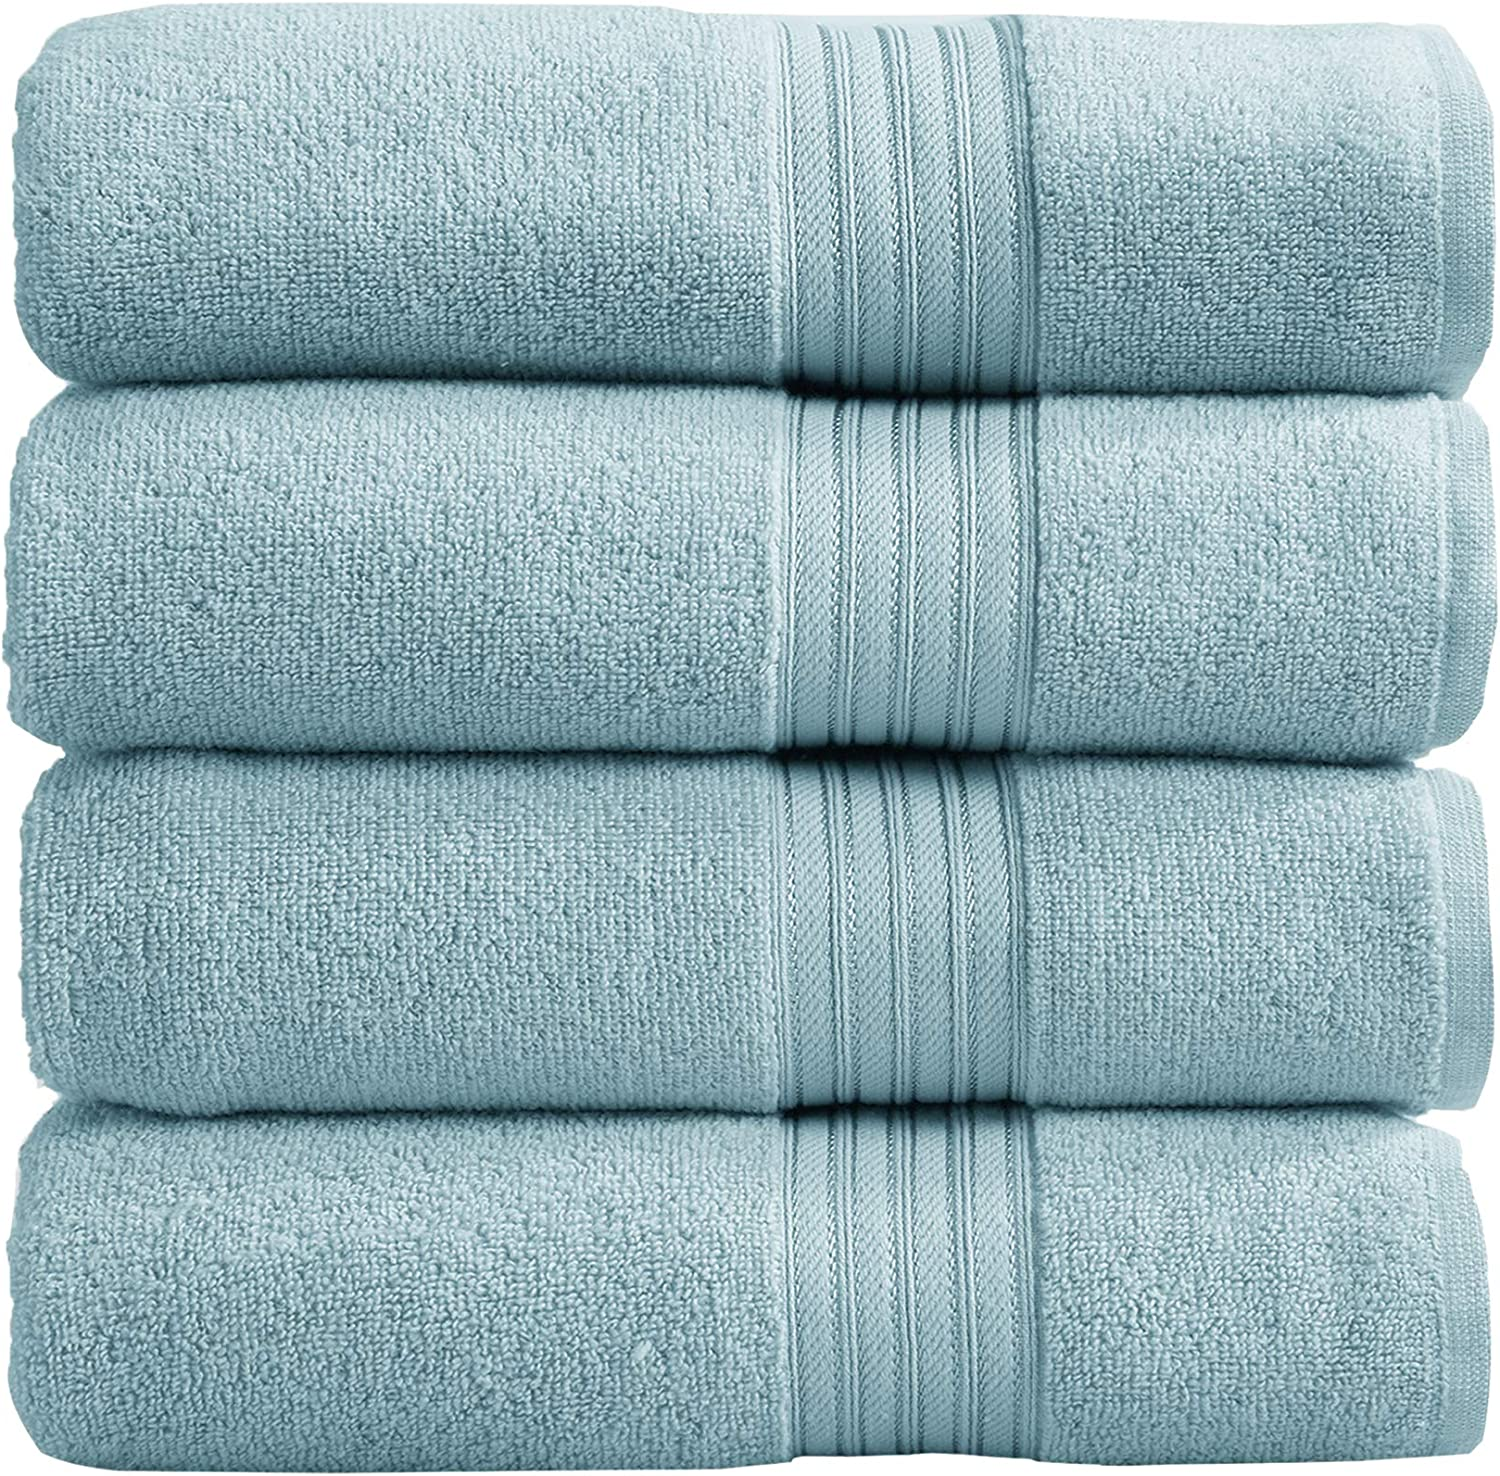 4-Pack Bath Towel Set. 100% Cotton Bathroom Towels. Absorbent Quick-Dry Plush Bath Towels. Cooper Collection. (Bath Towels, Spa Blue)